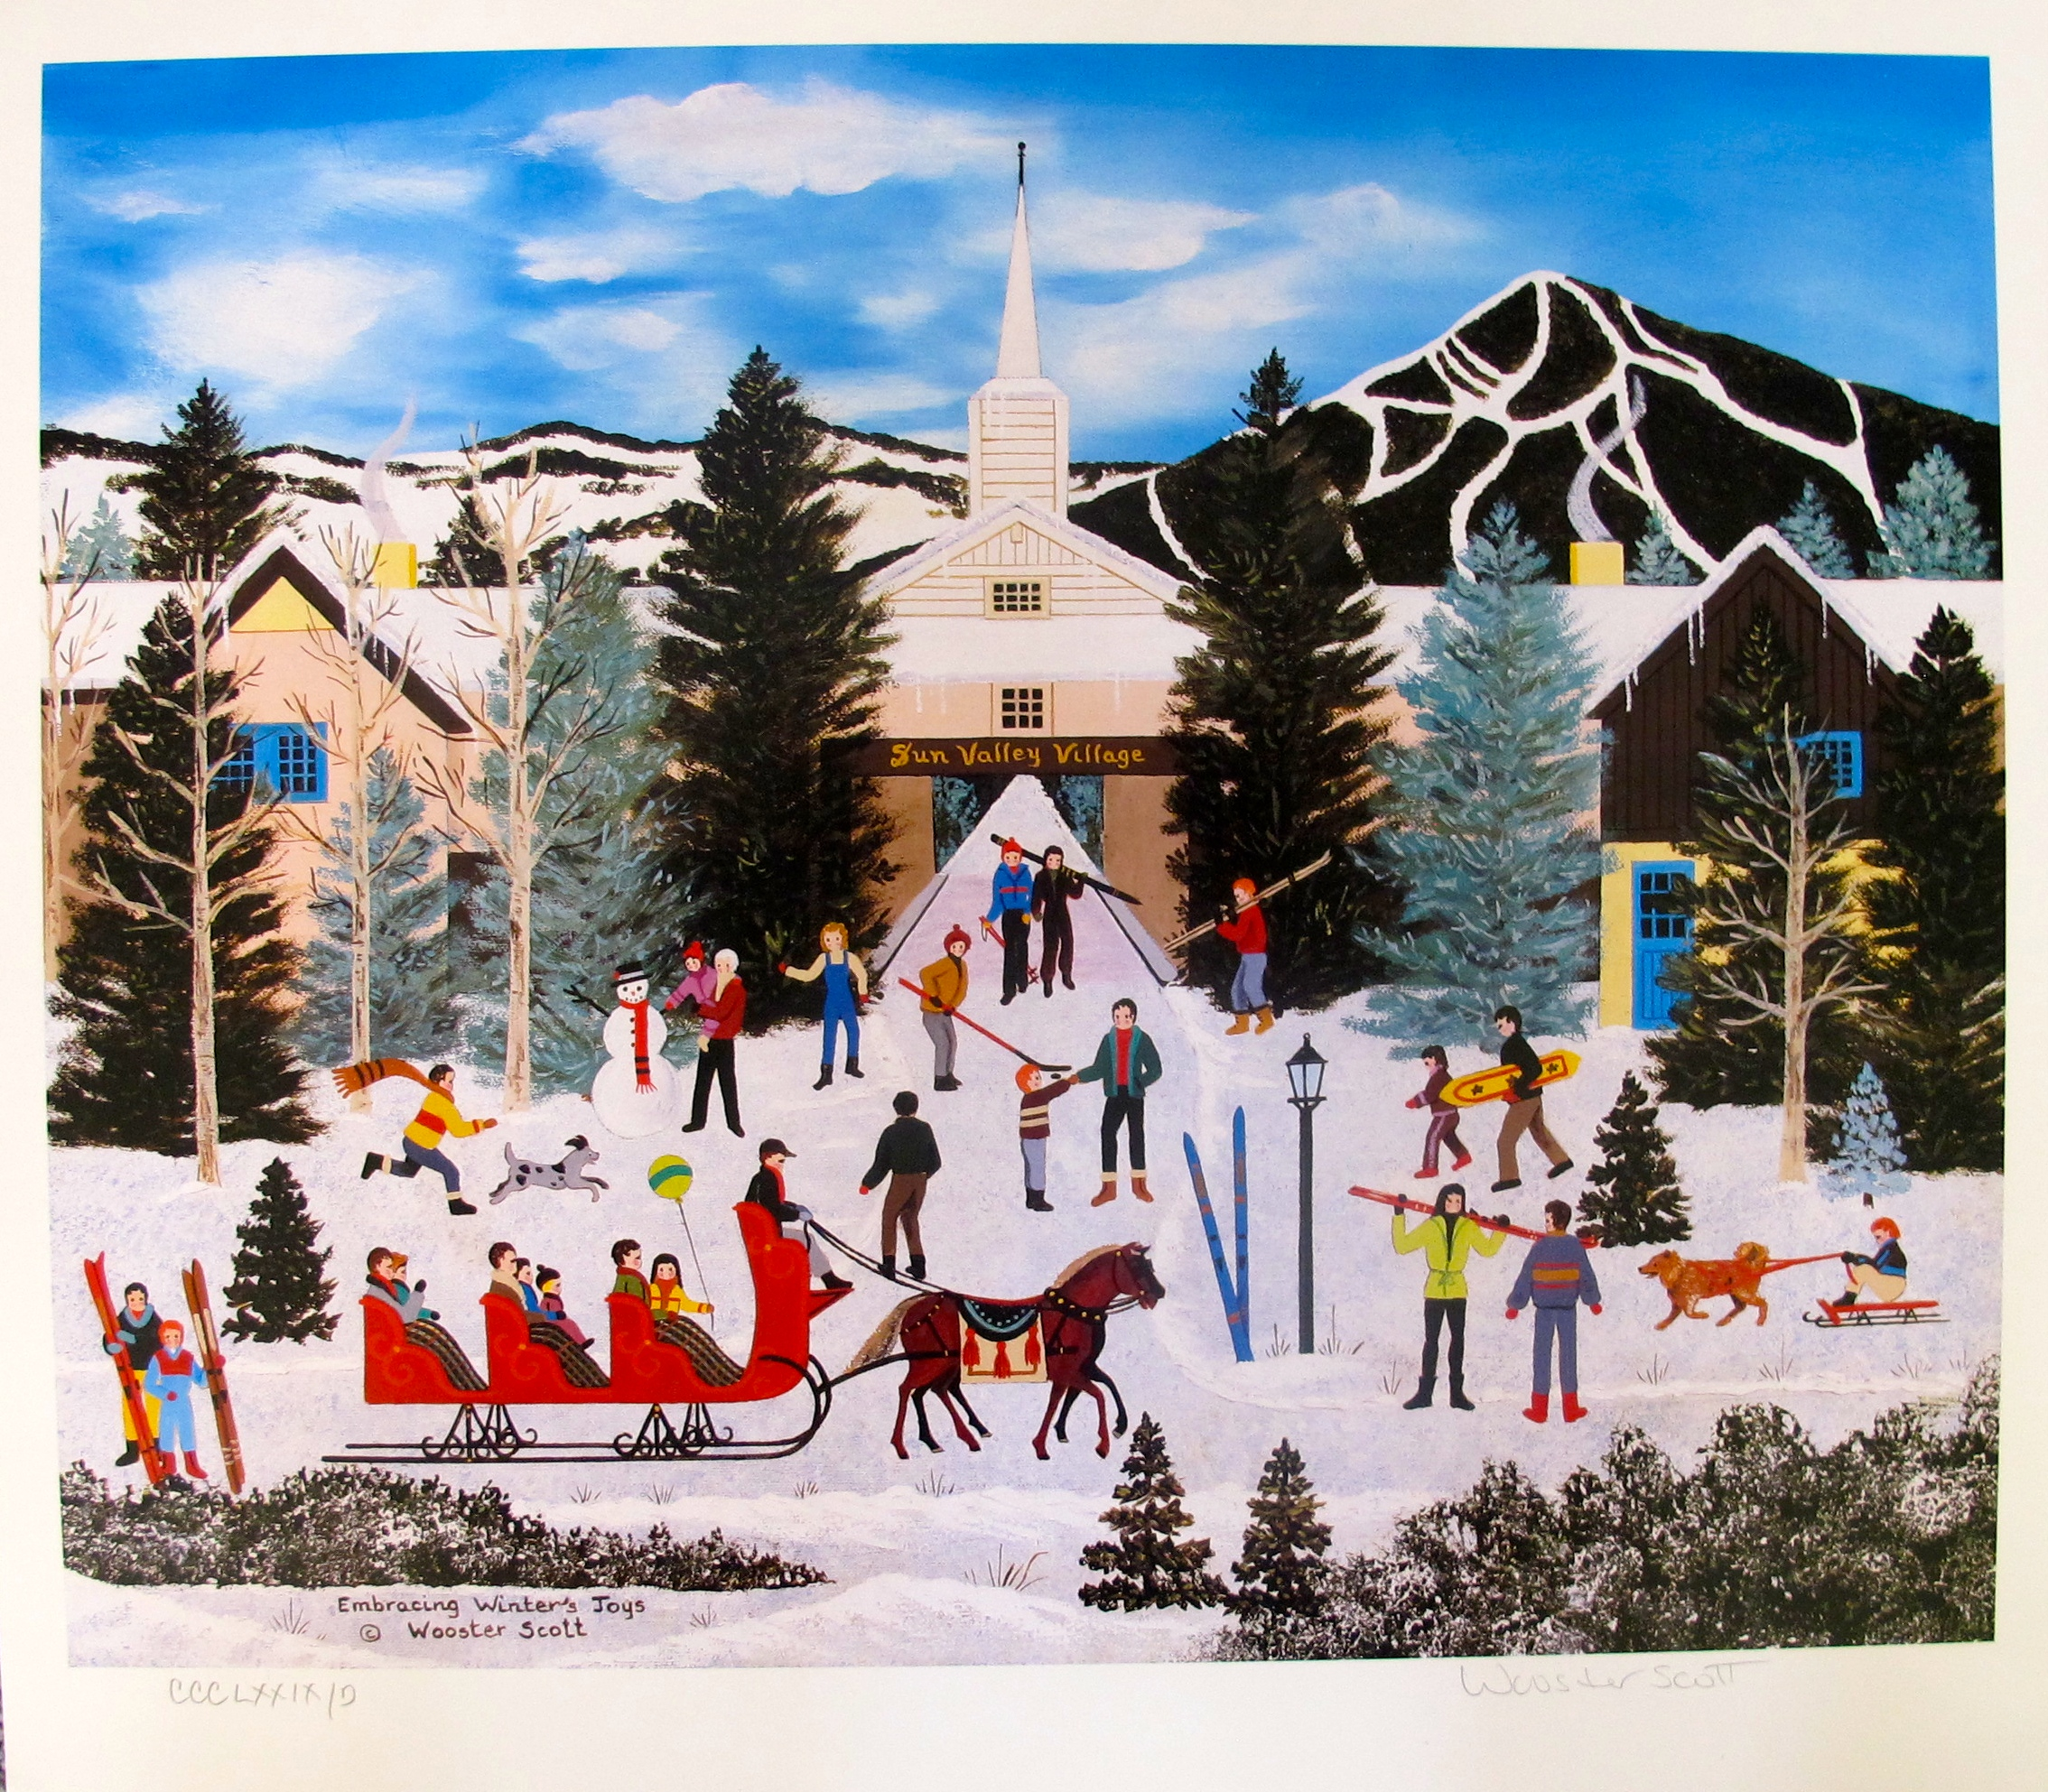 Jane Wooster Scott EMBRACING WINTER'S TOYS Hand Signed Limited Edition Lithograph